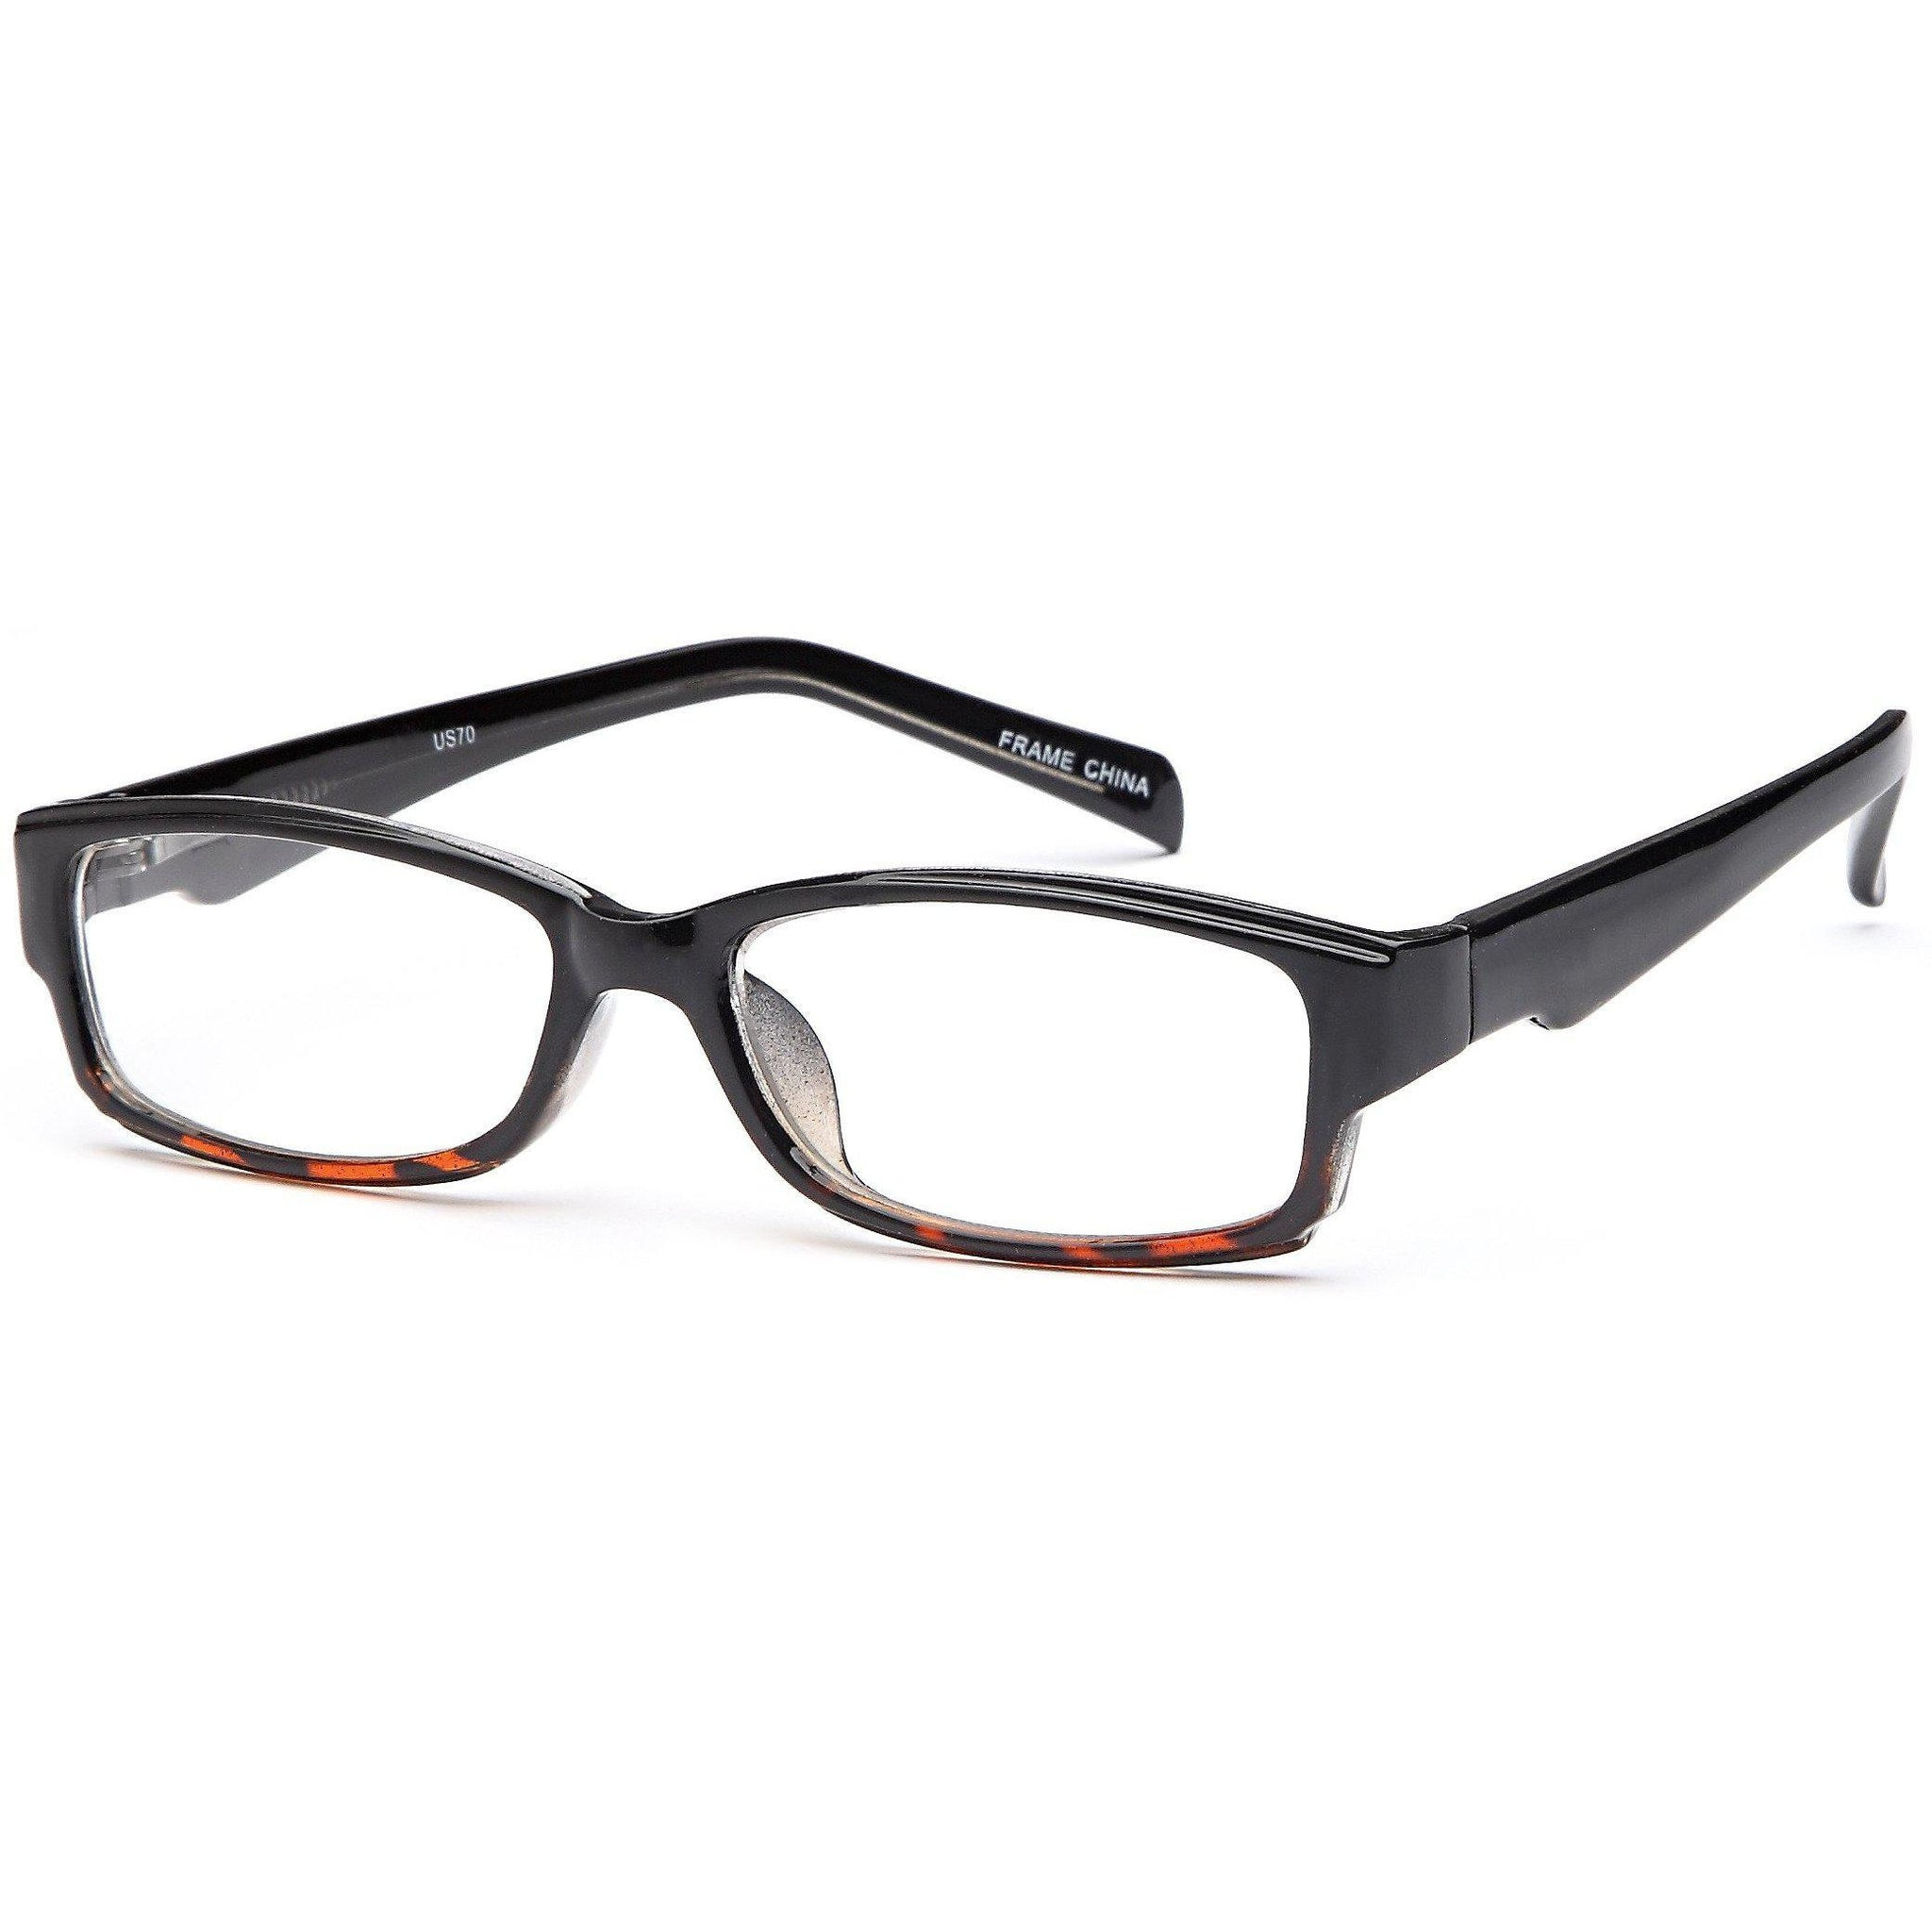 4U Prescription Glasses US 70 Optical Eyeglasses Frame - timetoshade